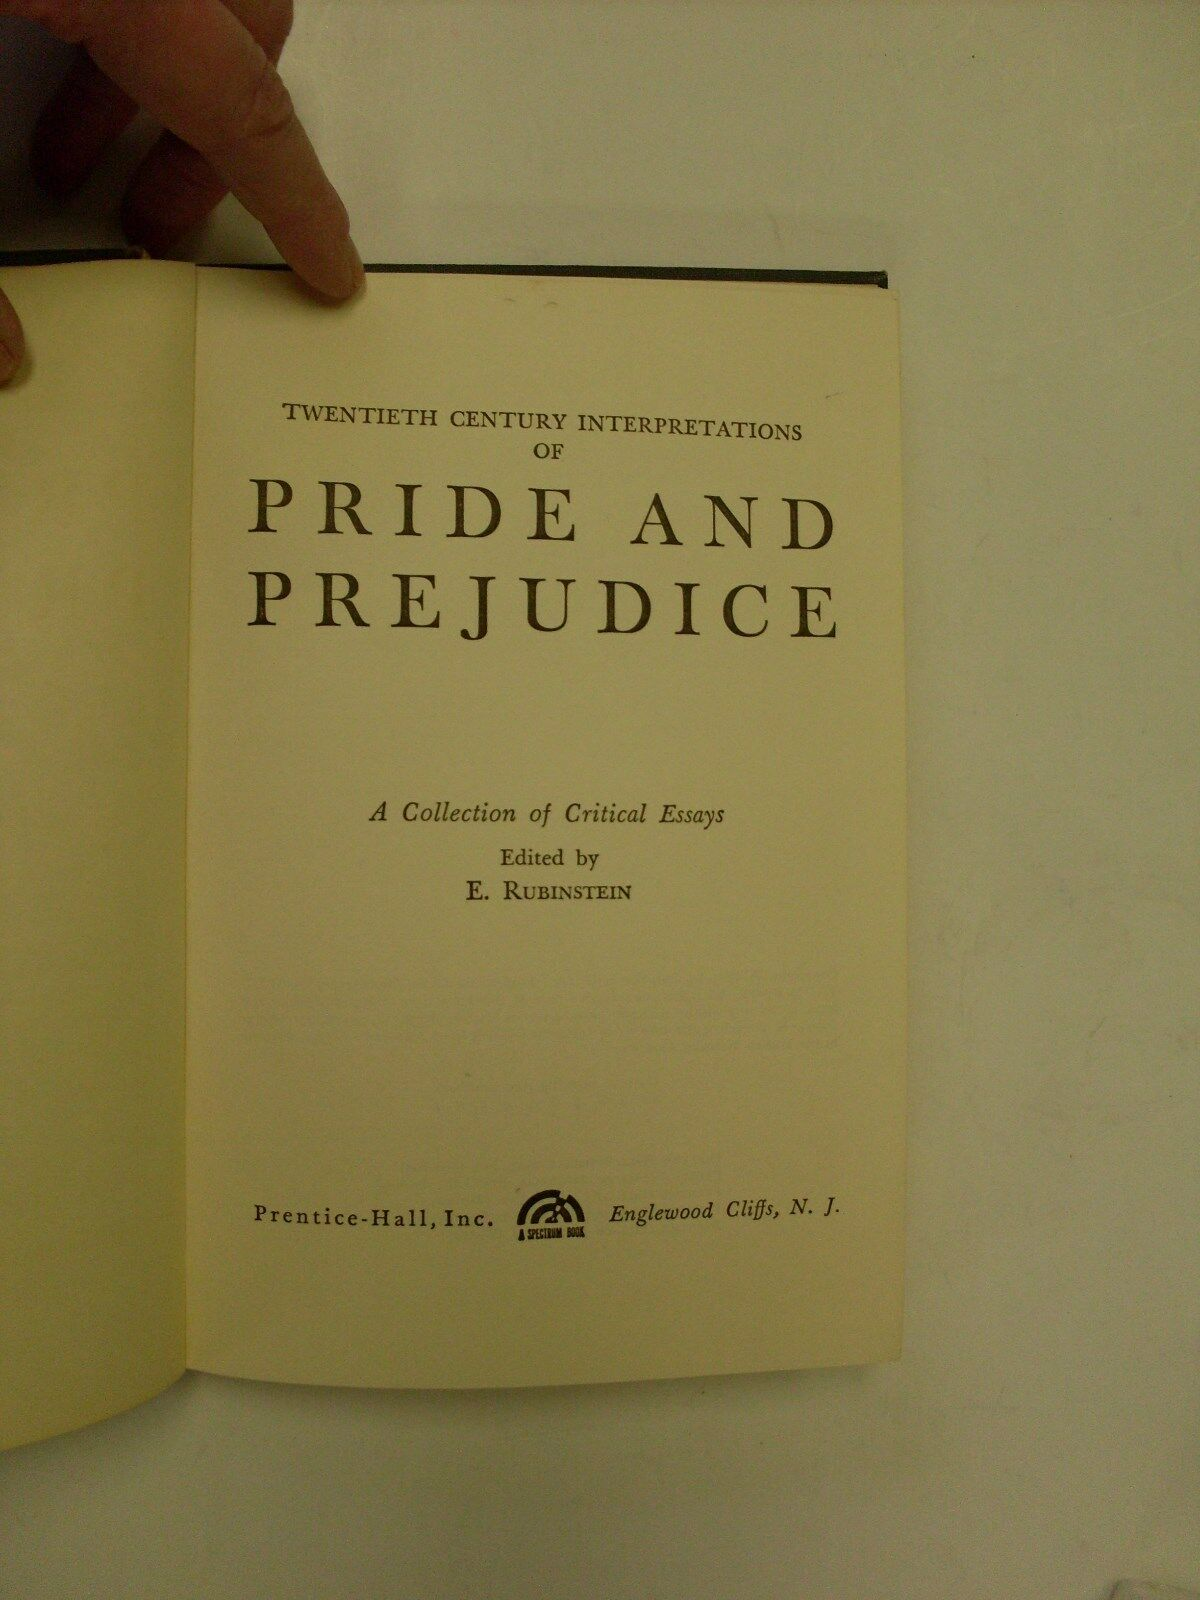 Essay Papers Online Twentieth Century Interpretations Of Pride And Prejudice  A Collection  Of Critical Essays By E Rubinstein  Hardcover  Ebay English As A Second Language Essay also Apa Format Sample Paper Essay Twentieth Century Interpretations Of Pride And Prejudice  A  What Is A Synthesis Essay